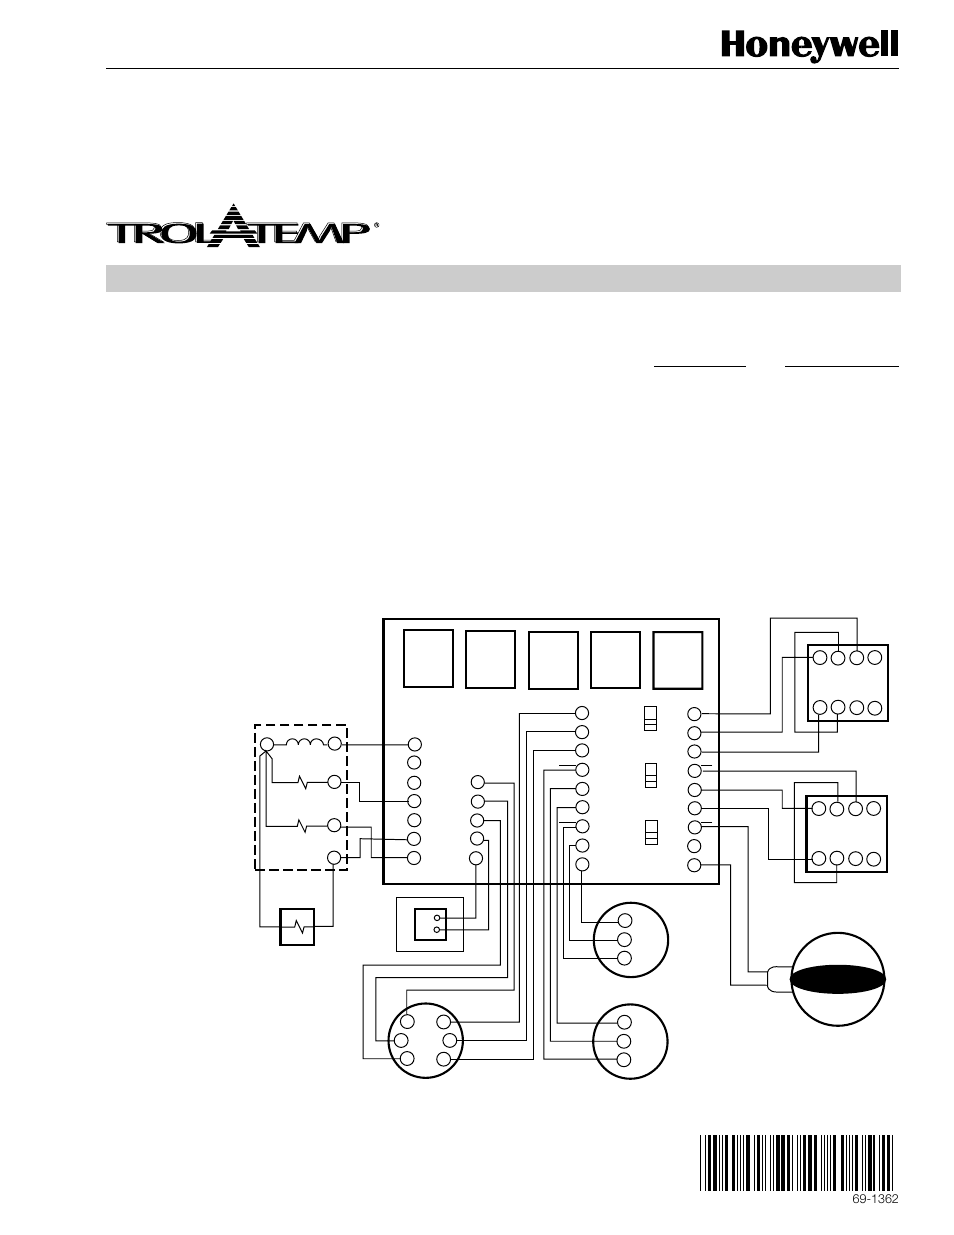 honeywell mm3 mastertrol mm 3 user manual 2 pages rh manualsdir com